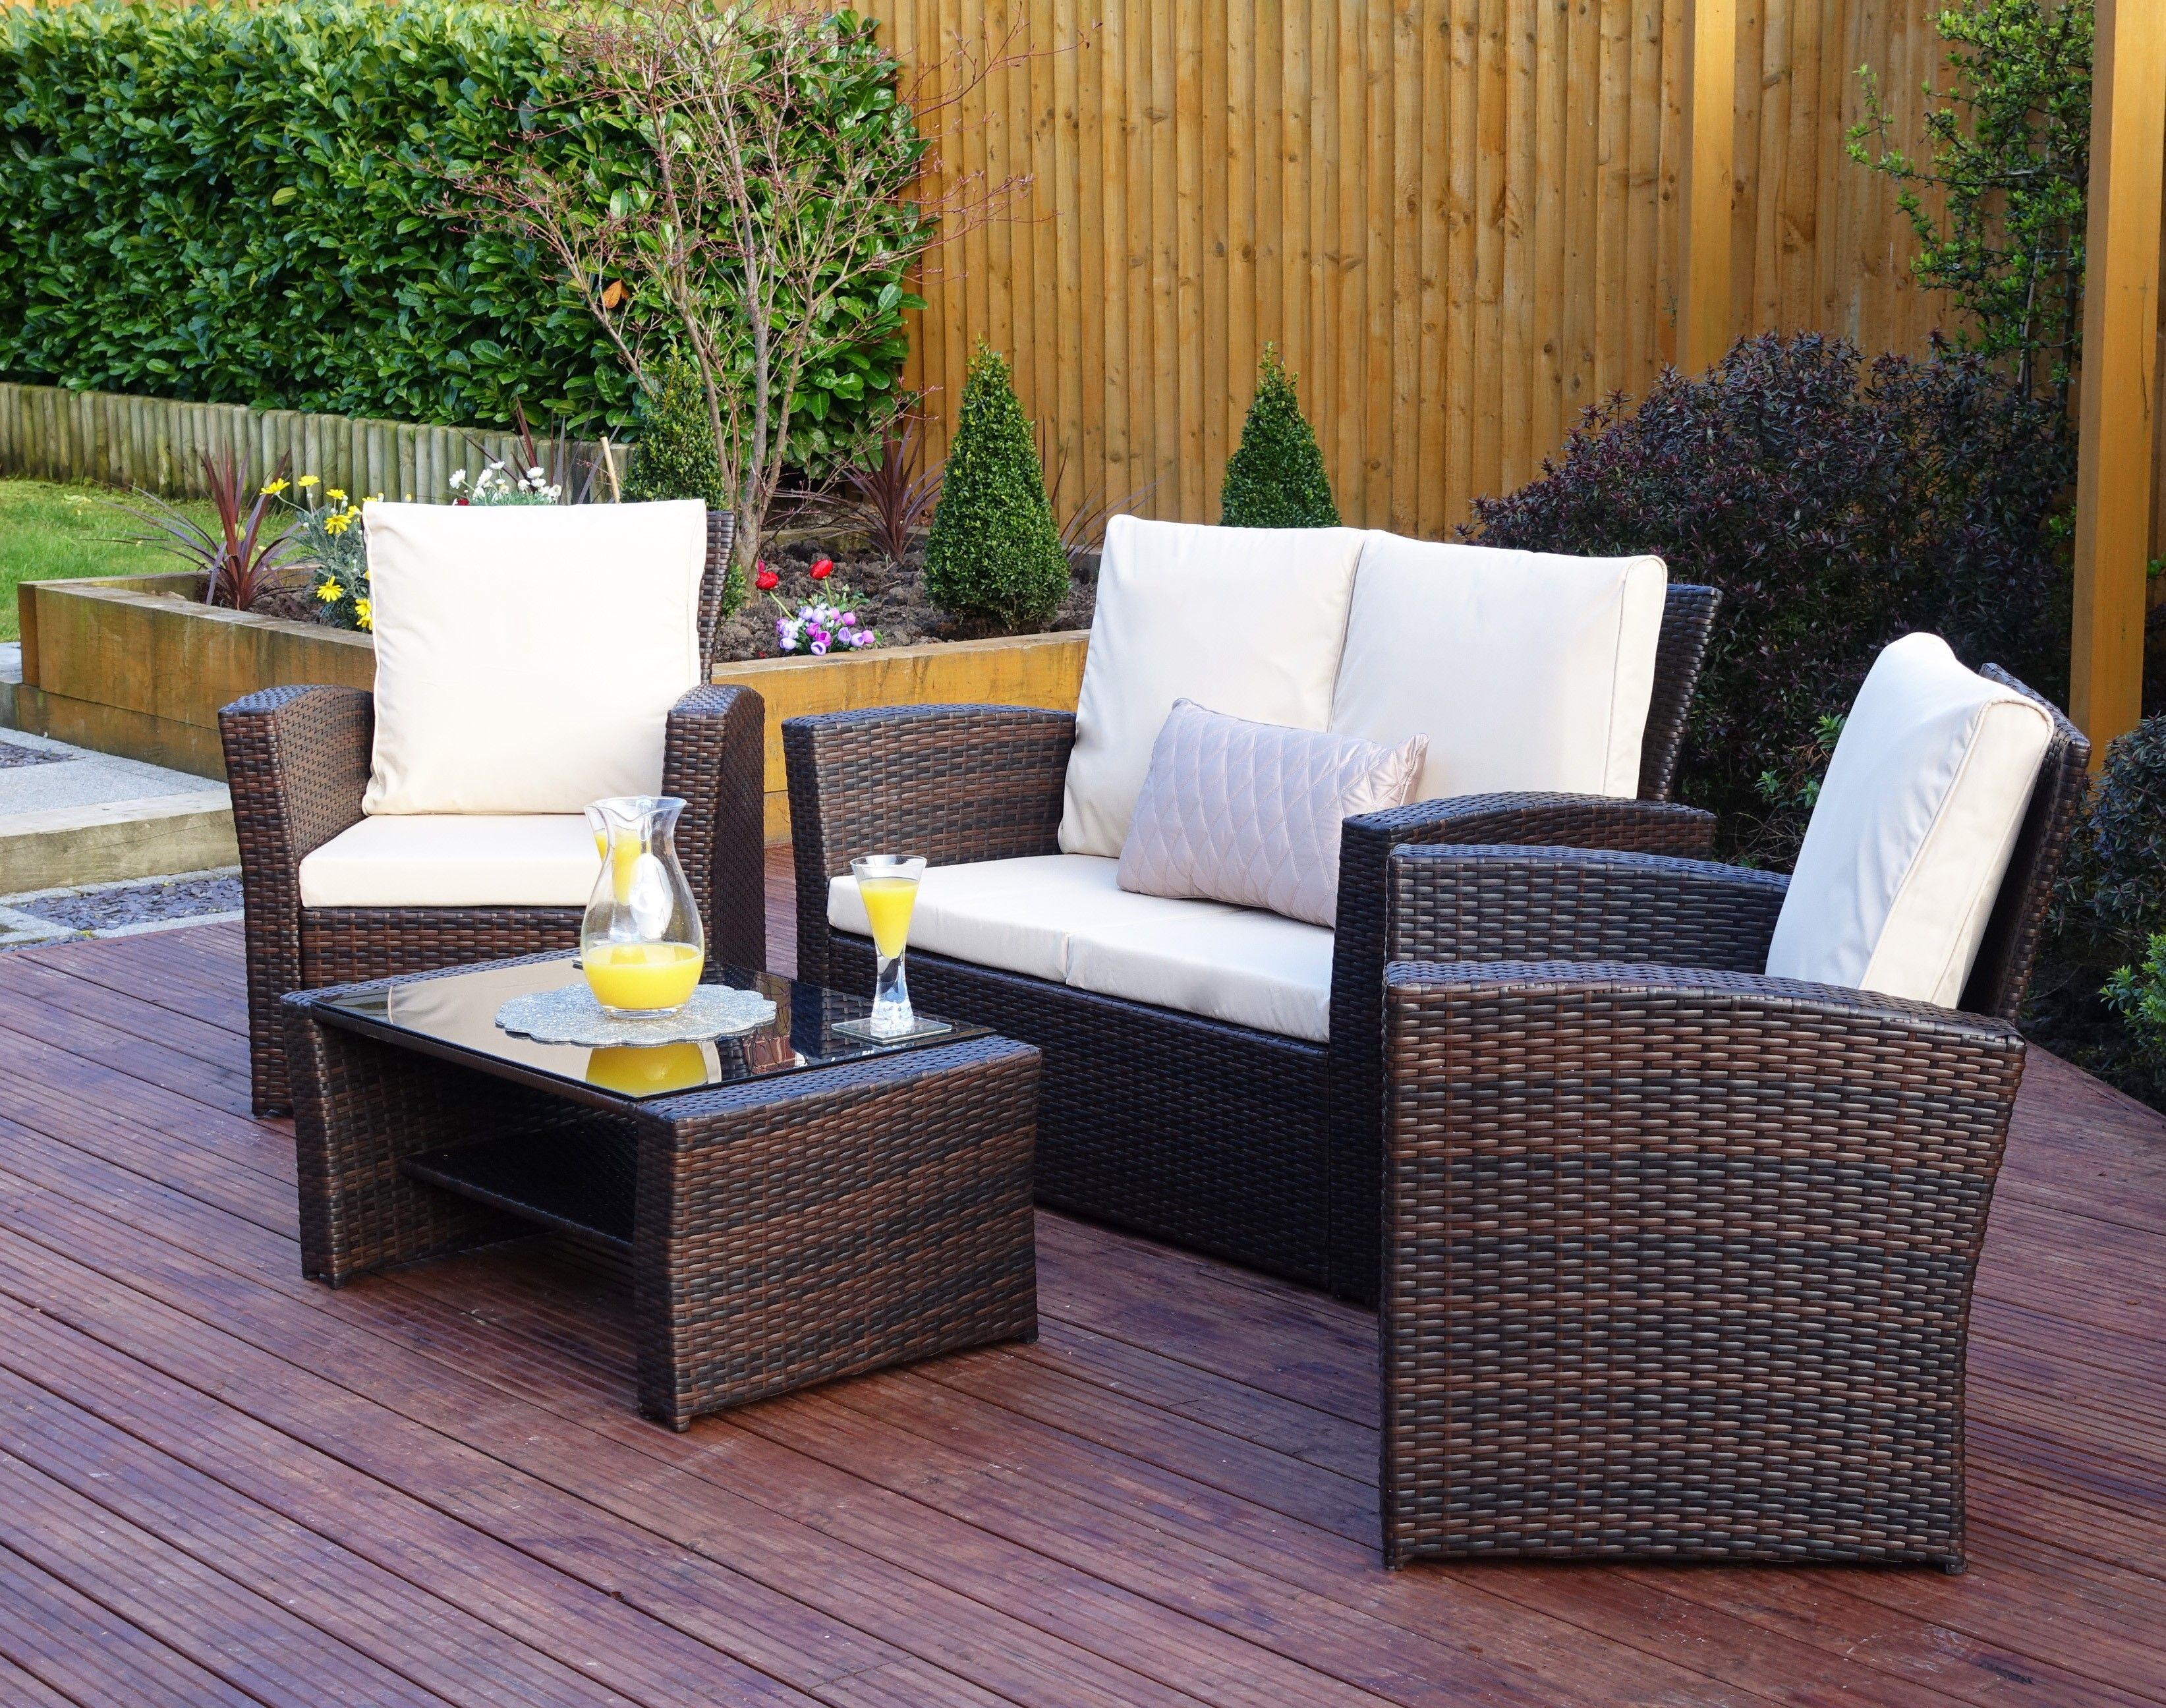 Rattan Garden Furniture Set